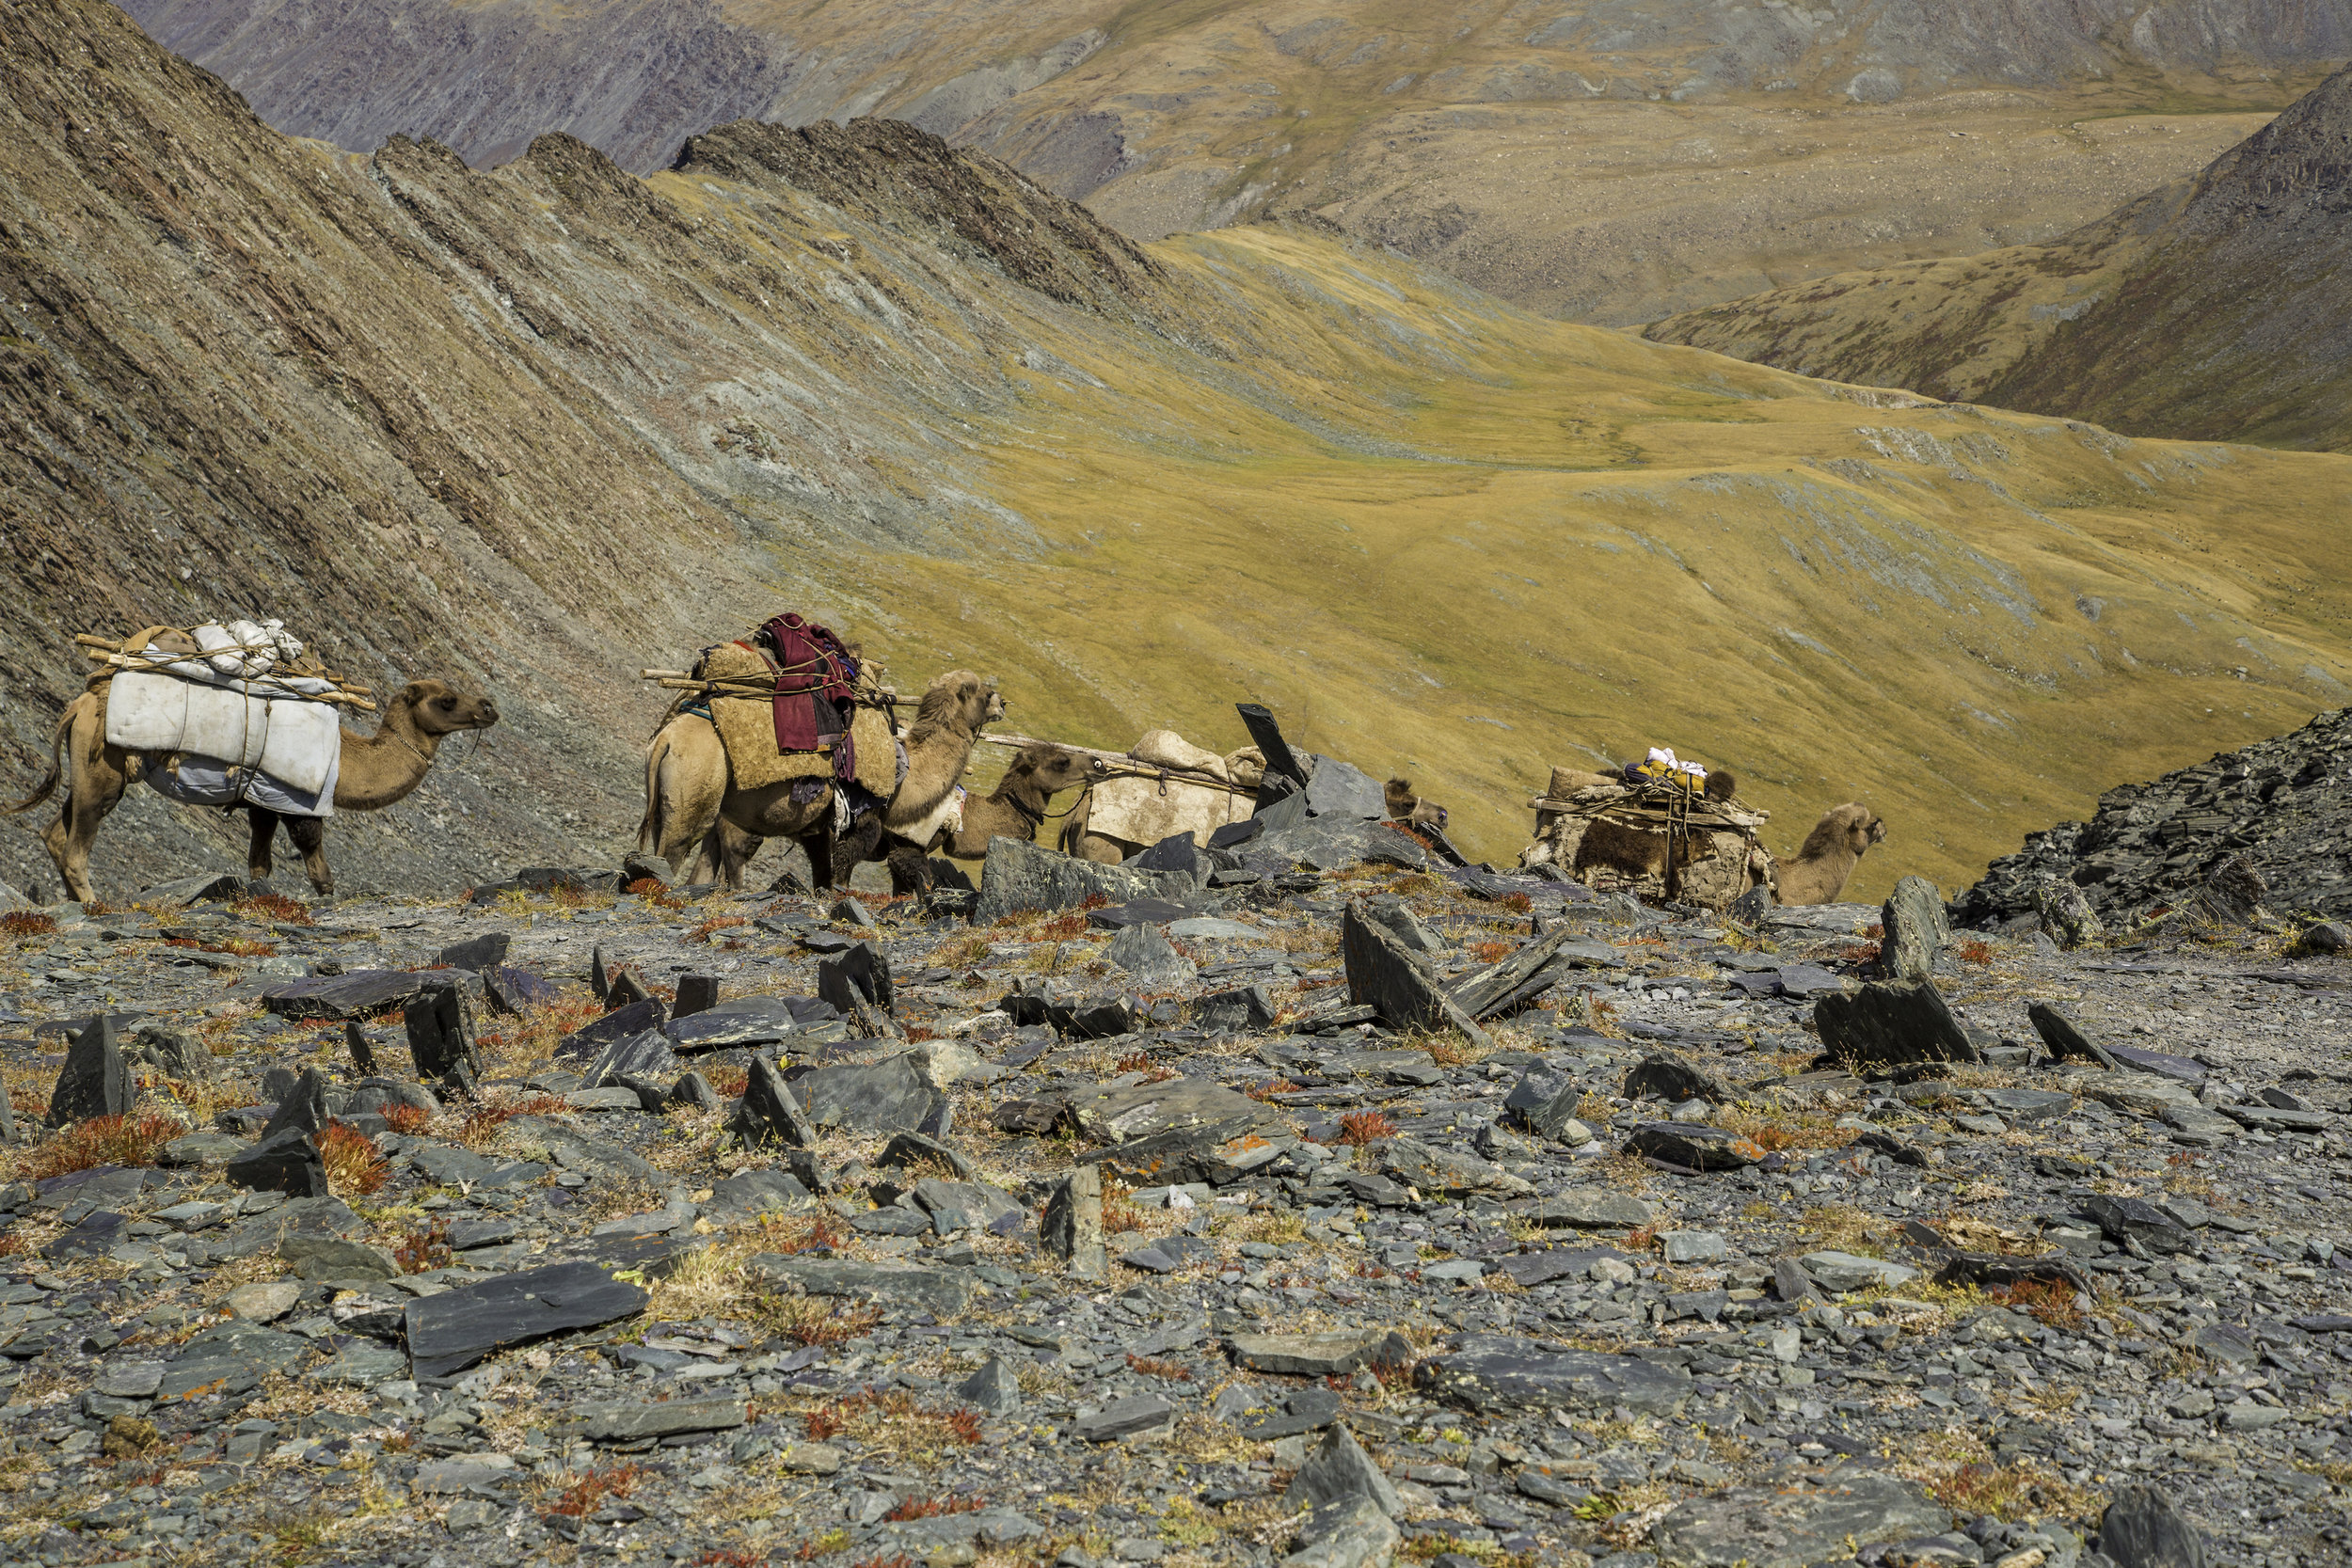 Tavan Bogd National Park - Edgewalkers Mongolia Walking Tour